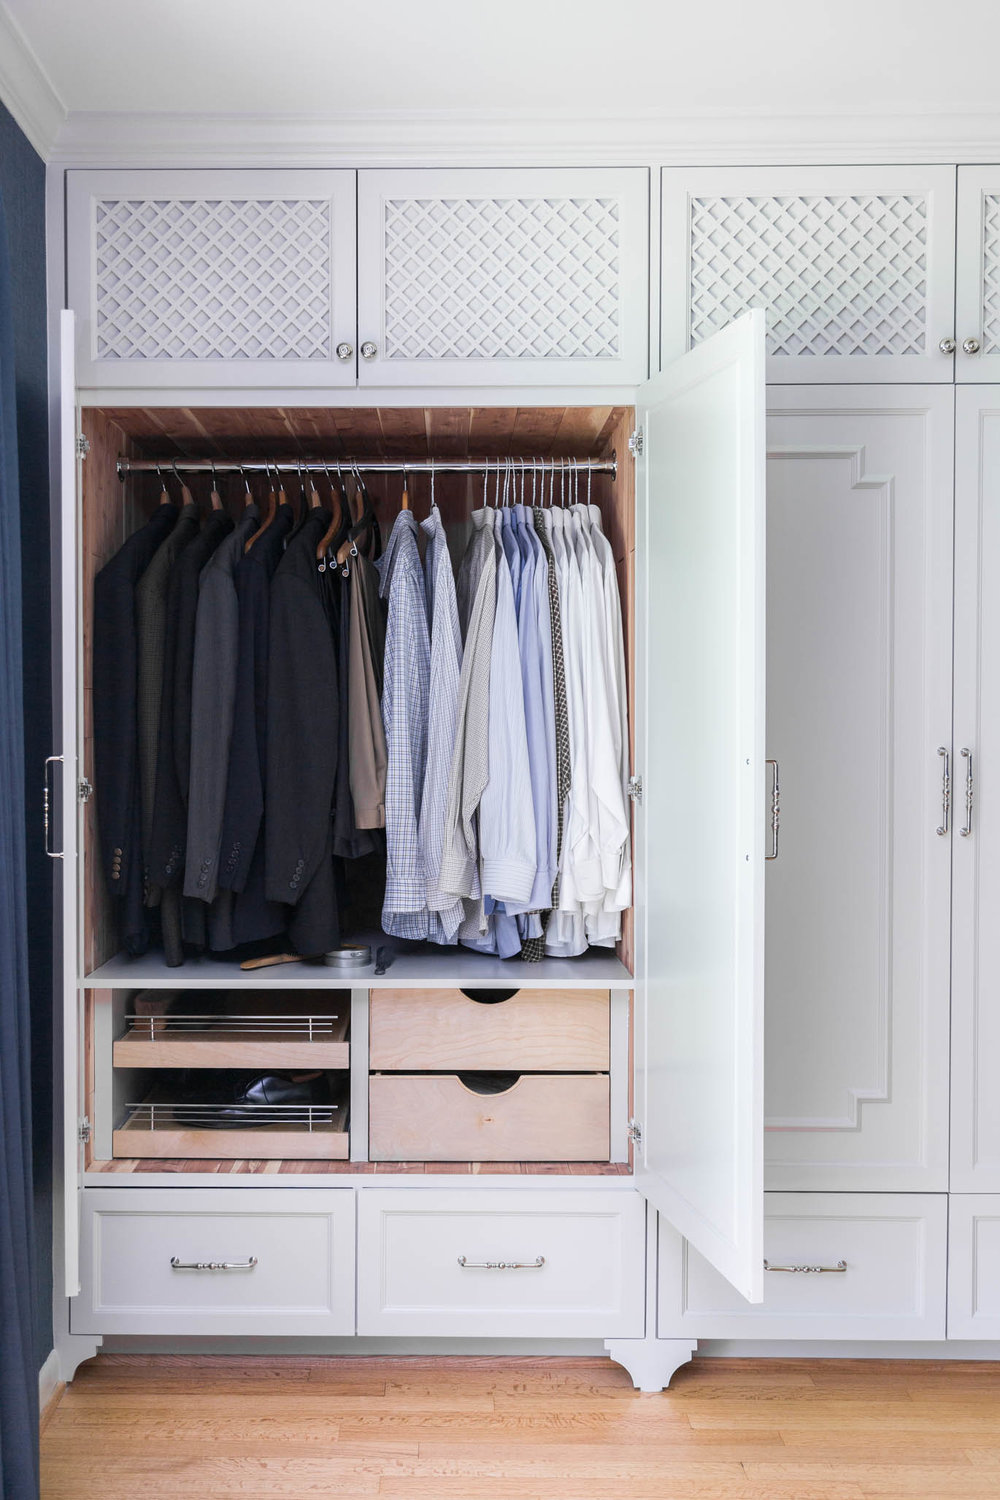 Master bedroom closet in cabinetry | Designer- Carla Aston, Photographer- Tori Aston #wardrobecloset #customcabinetry #closet